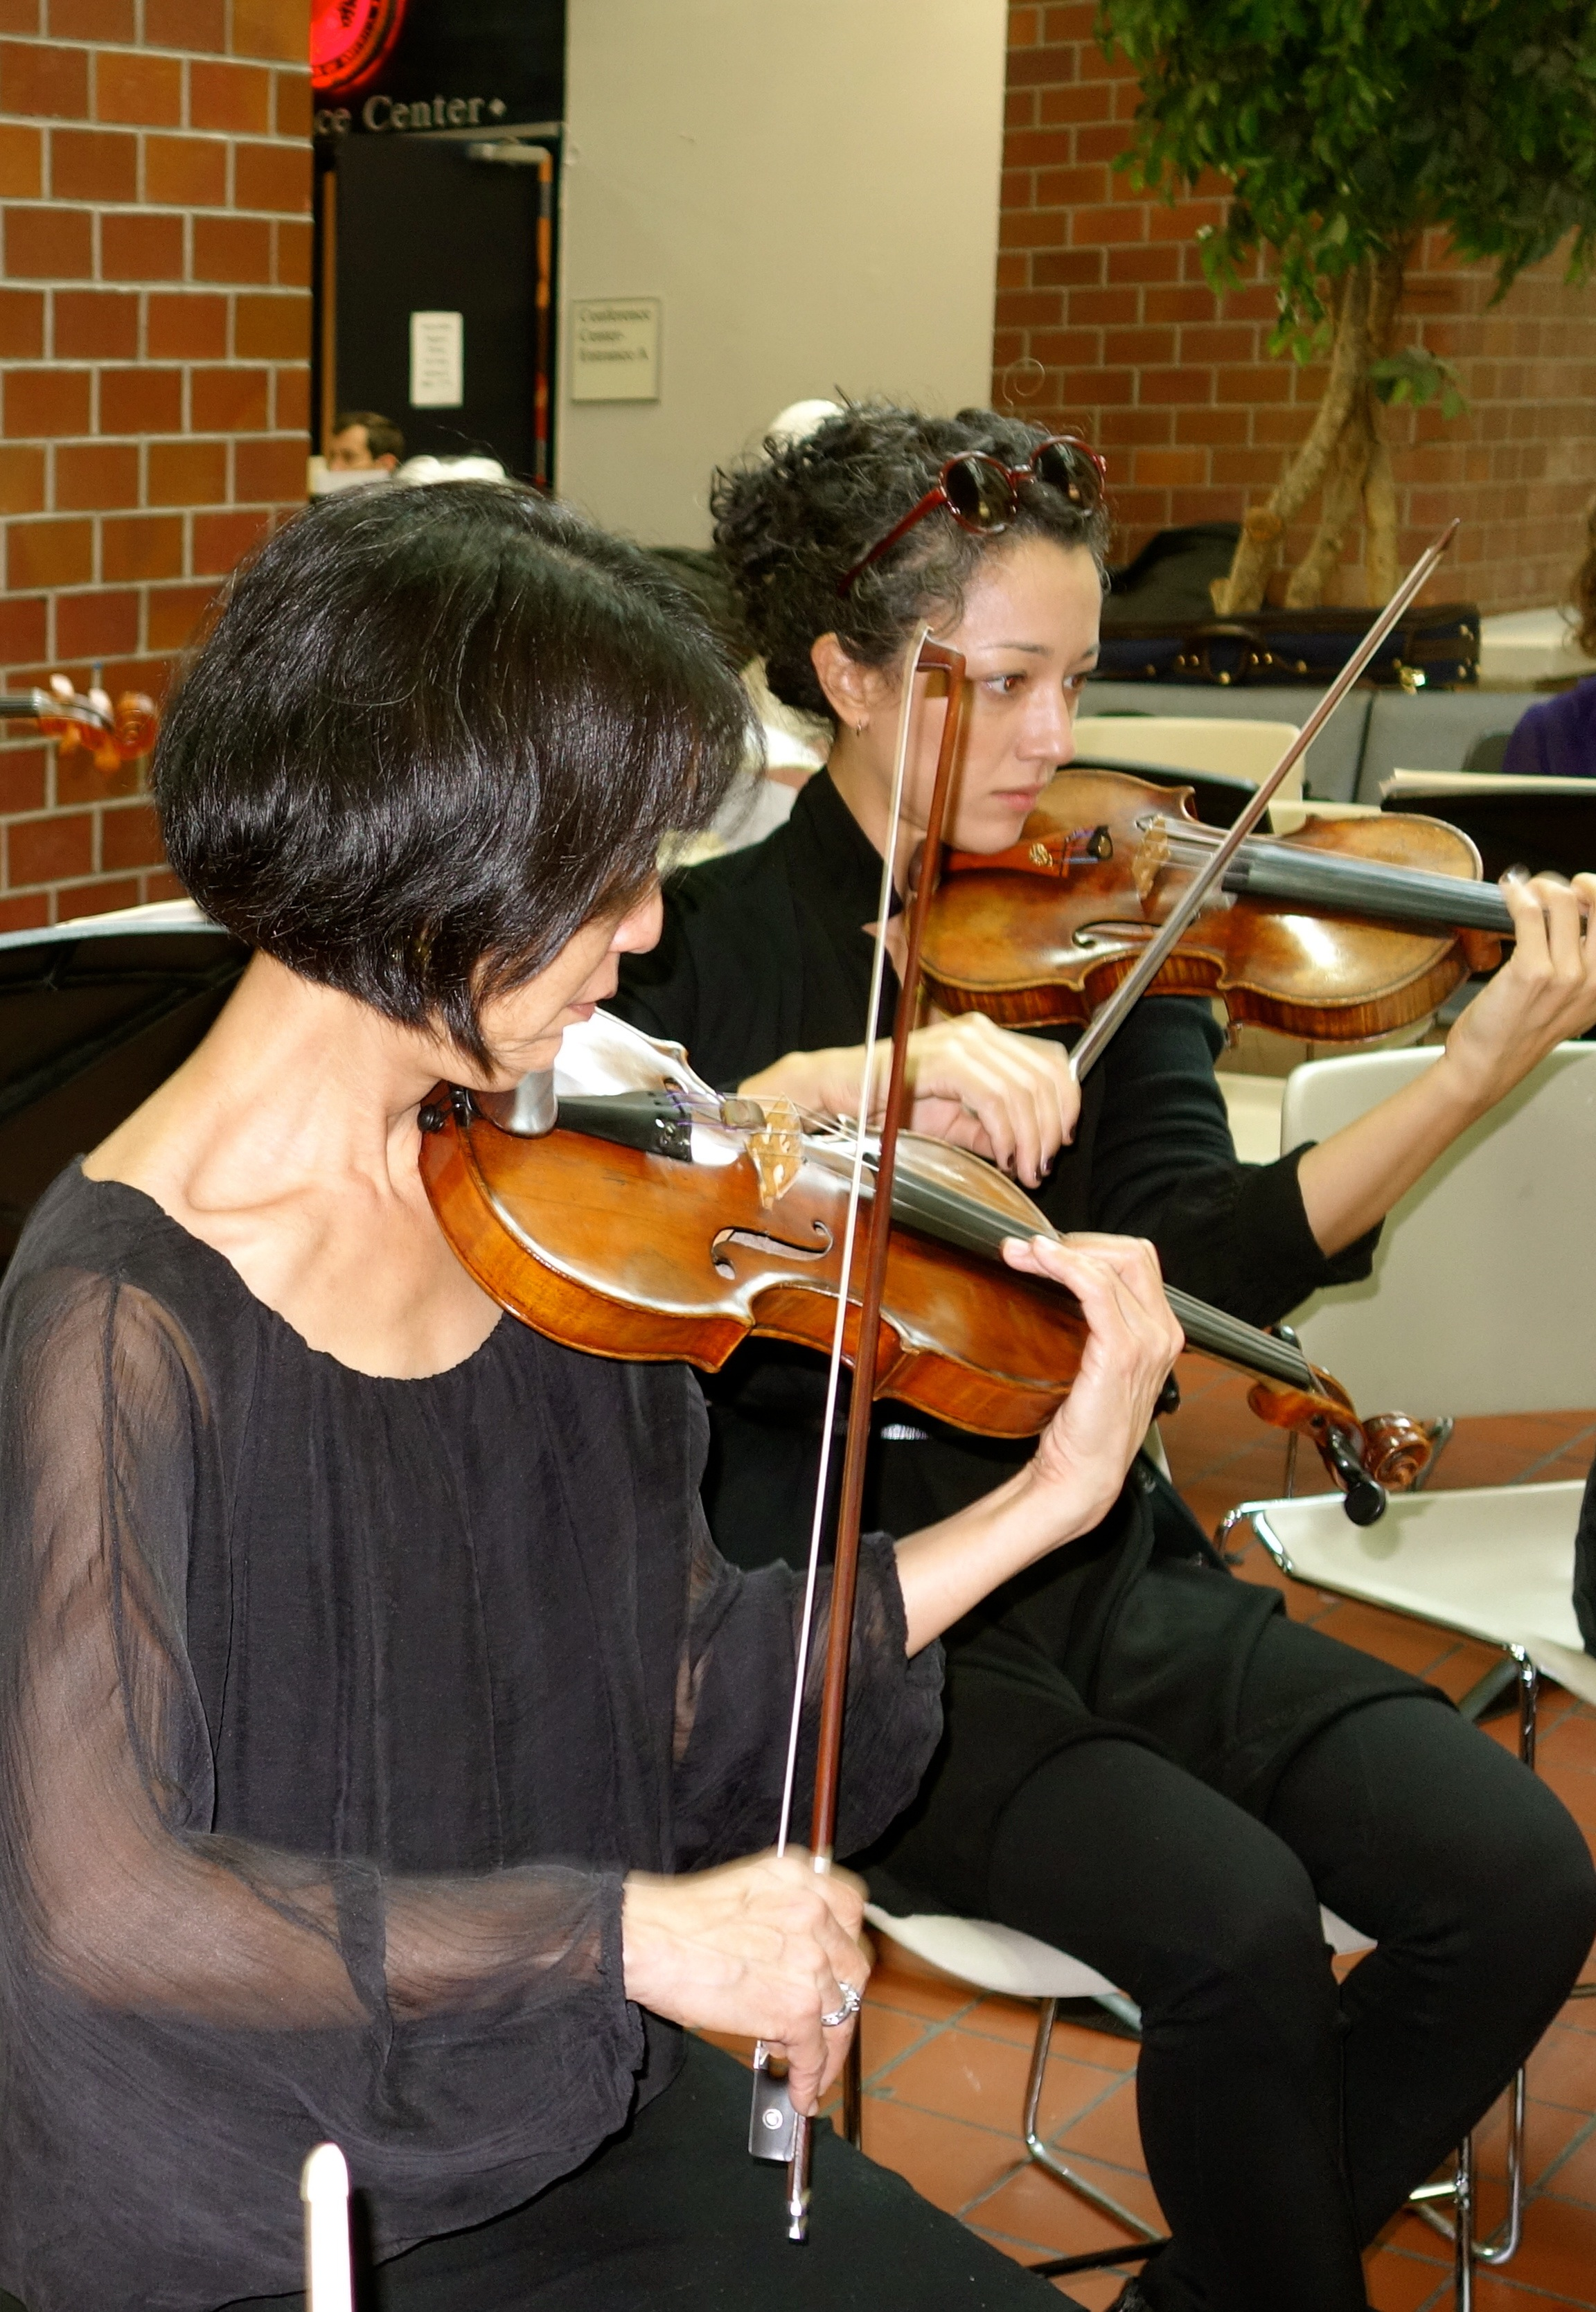 Concertmistress Nancy Wu and stand partner Toni Glickman warm up before the concert.